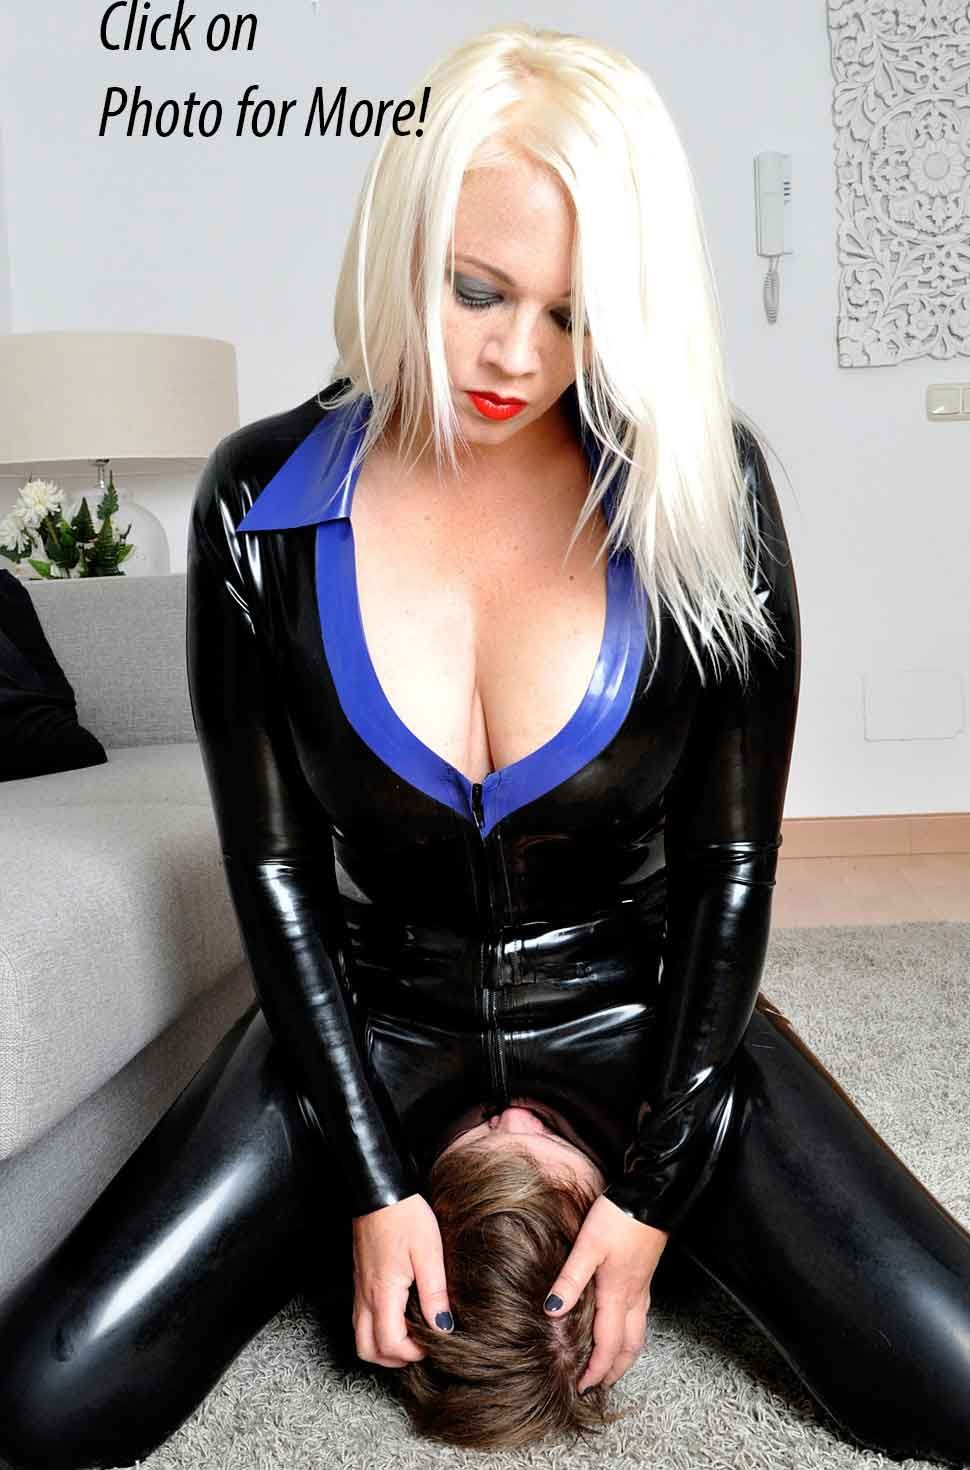 Pale lesbian slave made to worship ass - 4 1